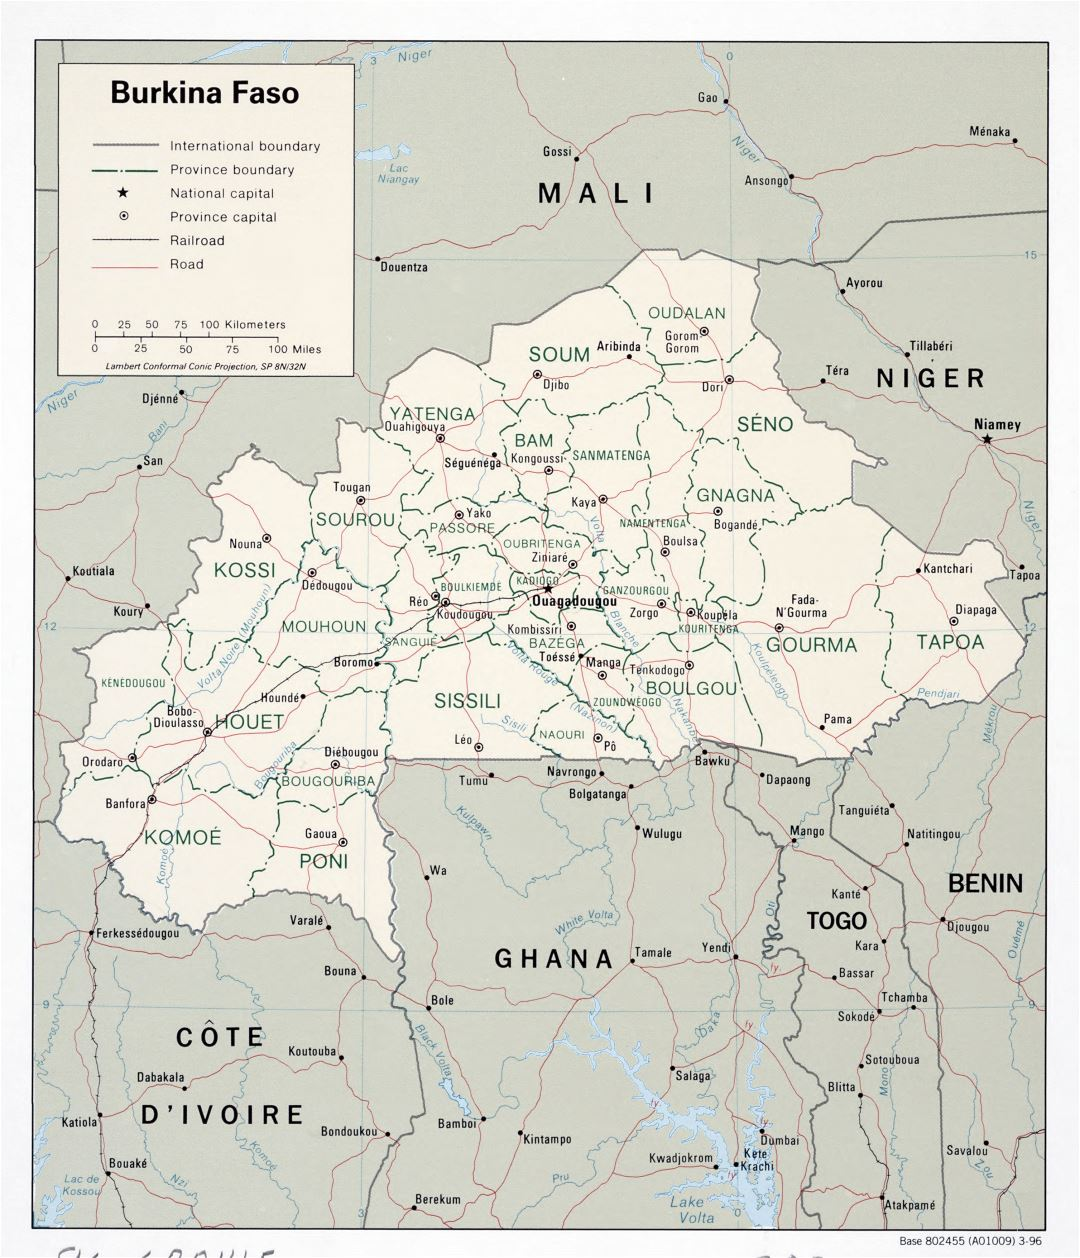 Large scale political and administrative map of Burkina Faso with roads, railroads and major cities - 1996